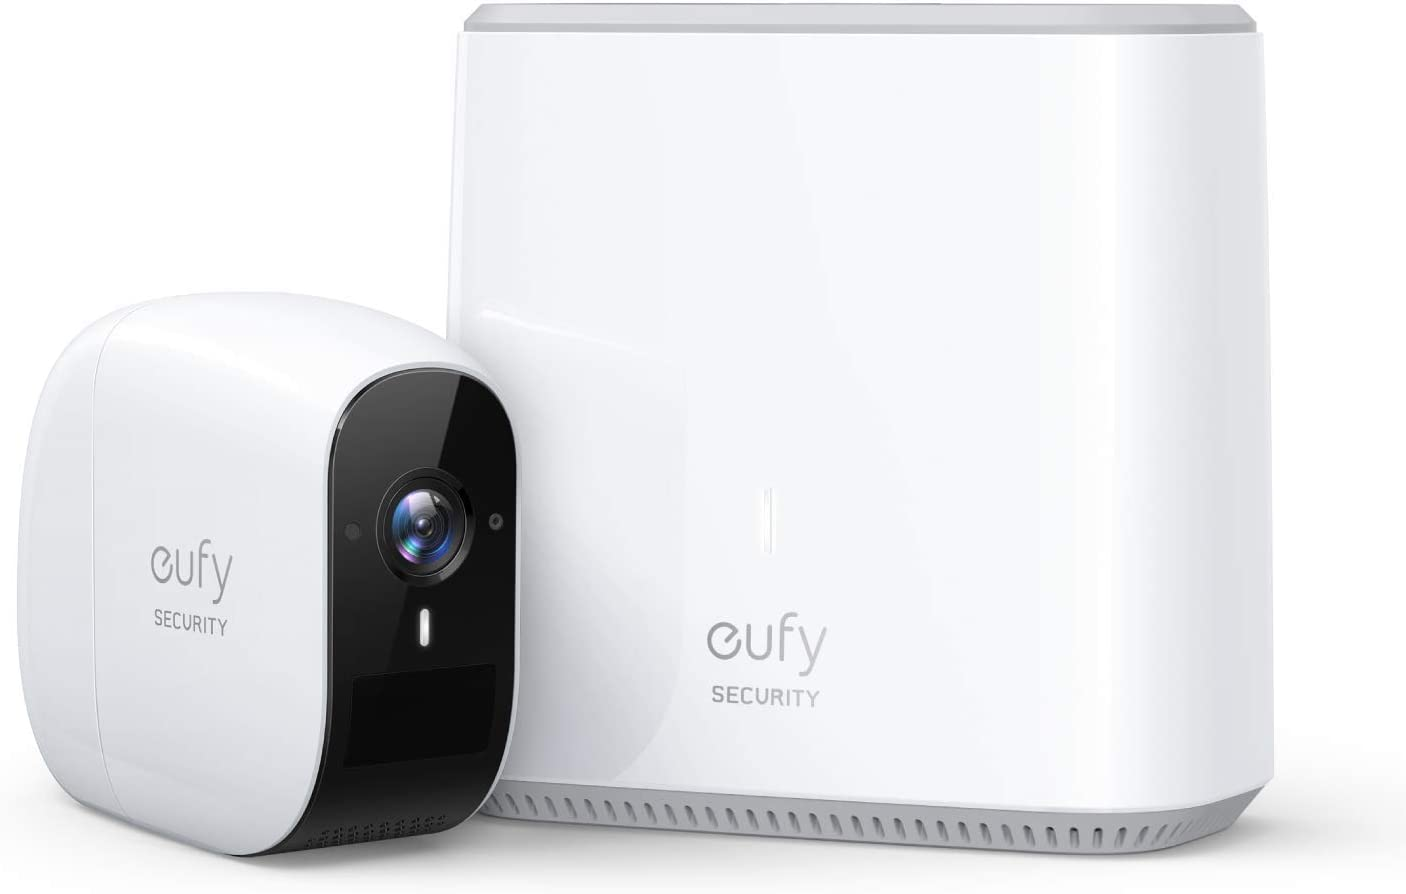 eufy Security eufyCam E Wireless Home Security Camera System, 365-Day Battery Life, HD 1080p, IP65 Weatherproof, Night Vision, Compatible with Amazon Alexa, 1-Cam Kit, No Monthly Fee (Renewed)